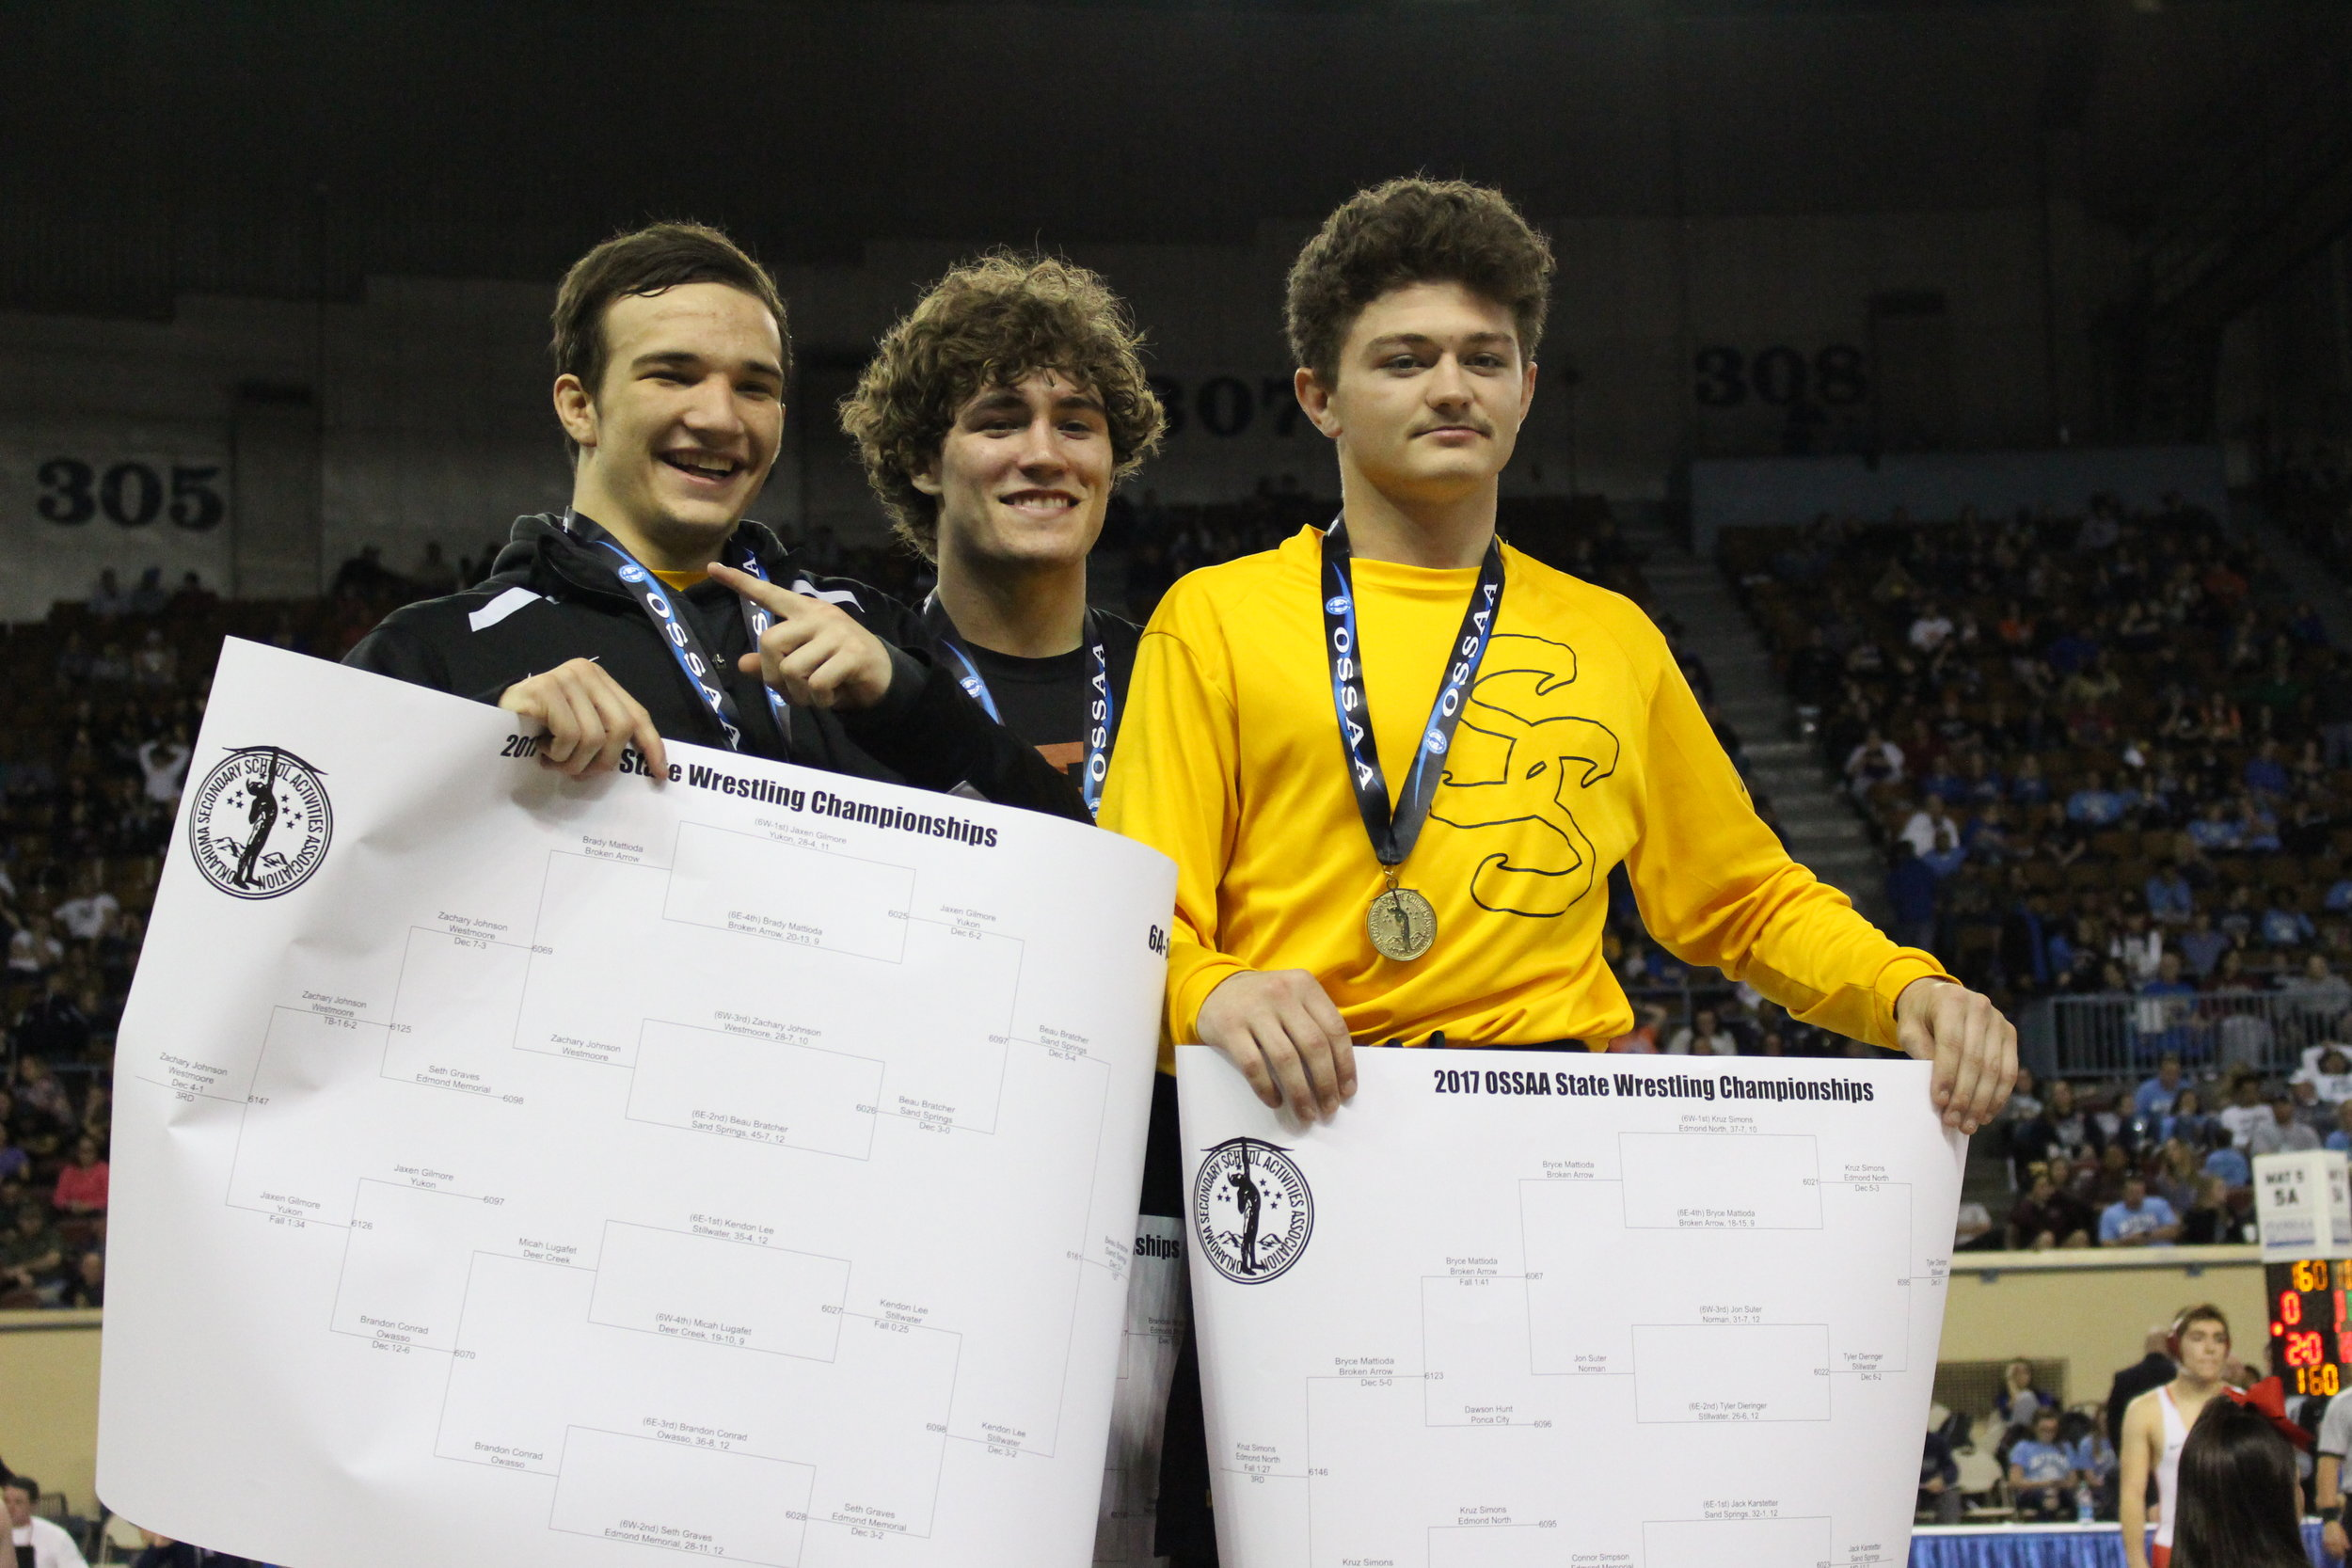 The three State Champions from the Class of 2017.